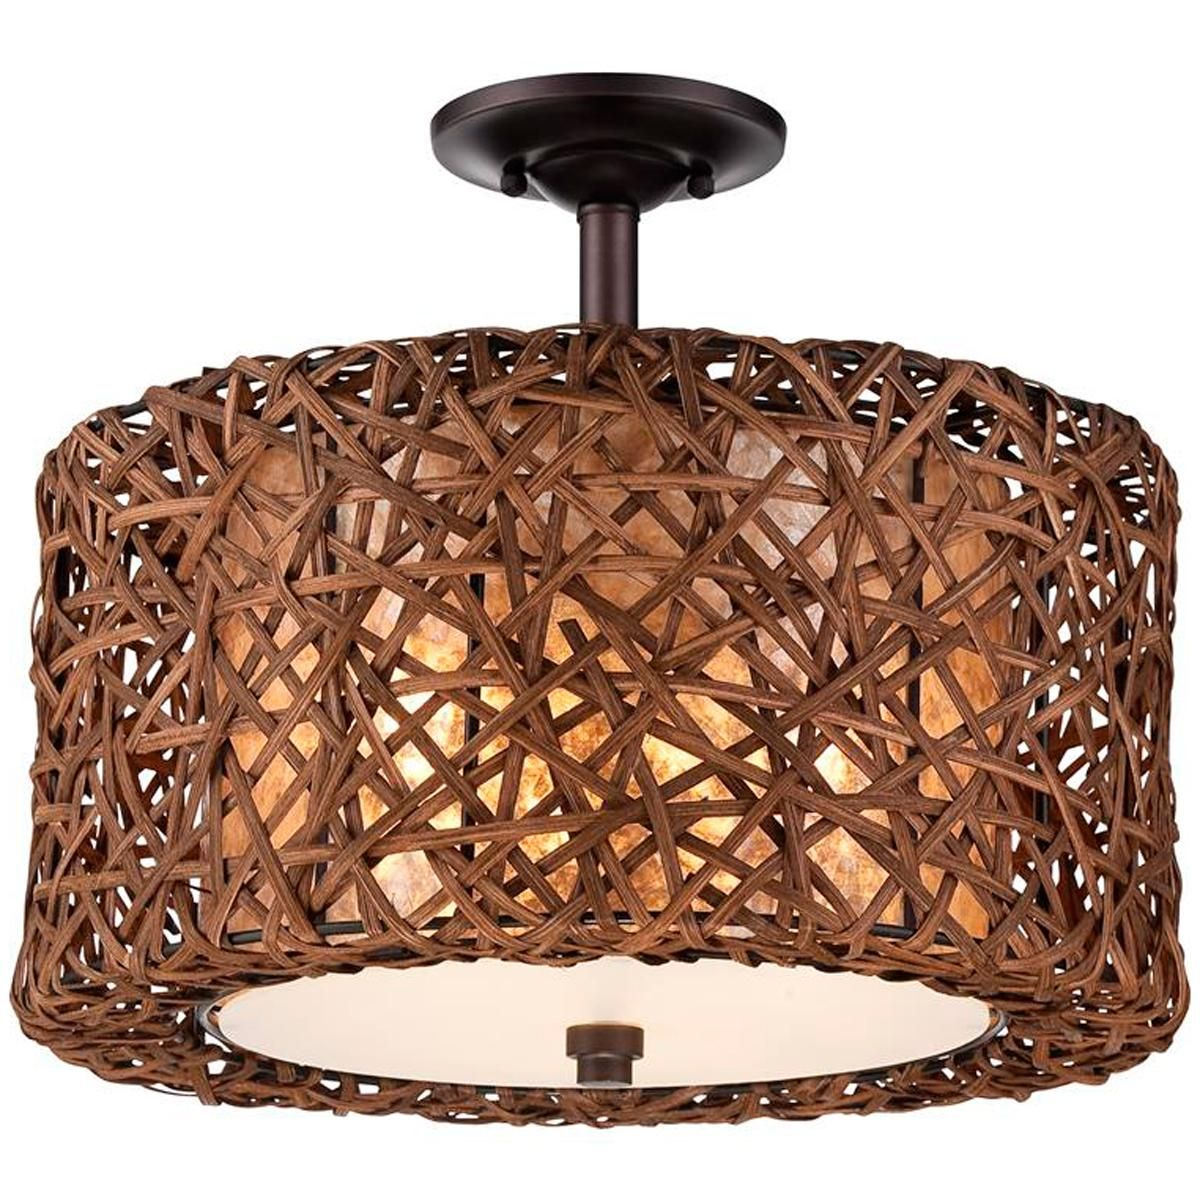 Modern woven rattan ceiling light casual with a touch of beach modern woven rattan ceiling light casual with a touch of beach chic and modern rustic style arubaitofo Image collections